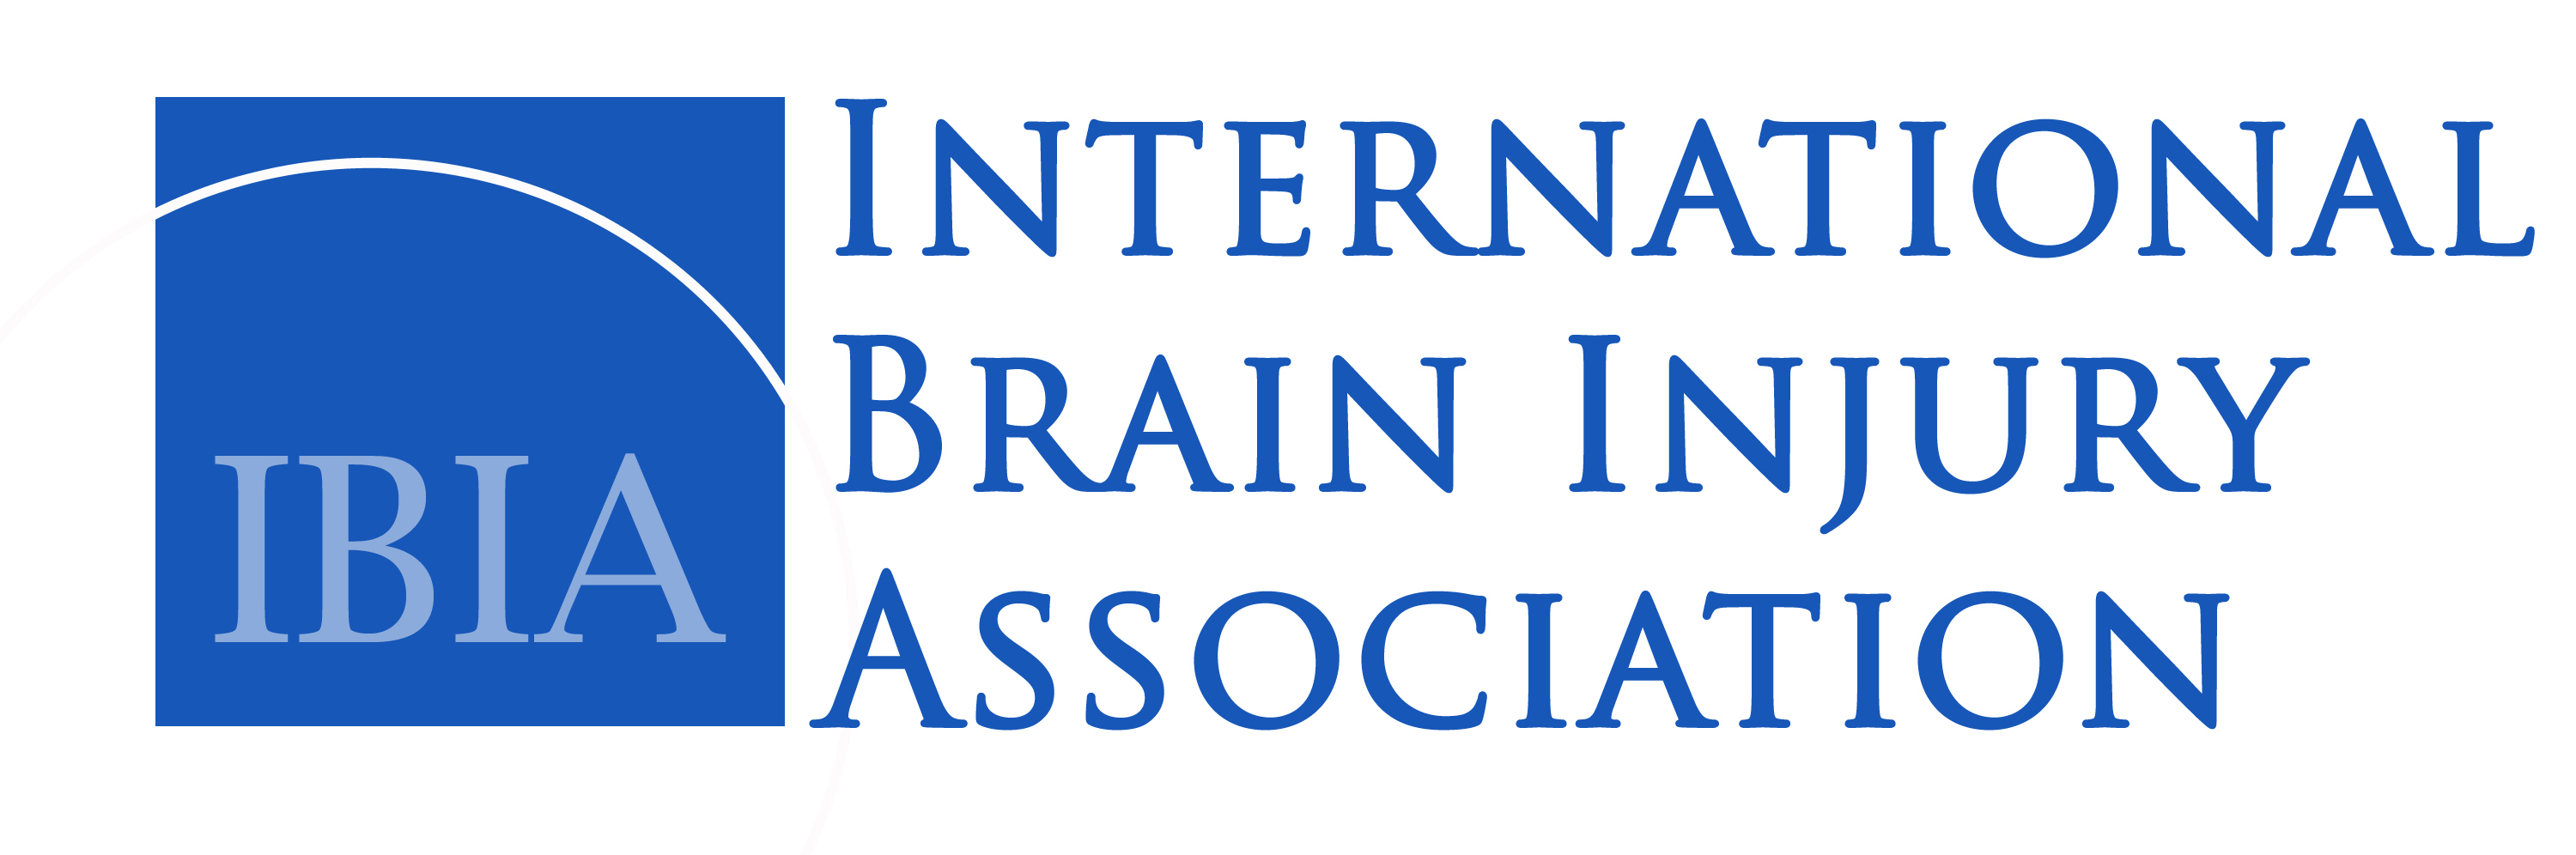 International Brain Injury Association